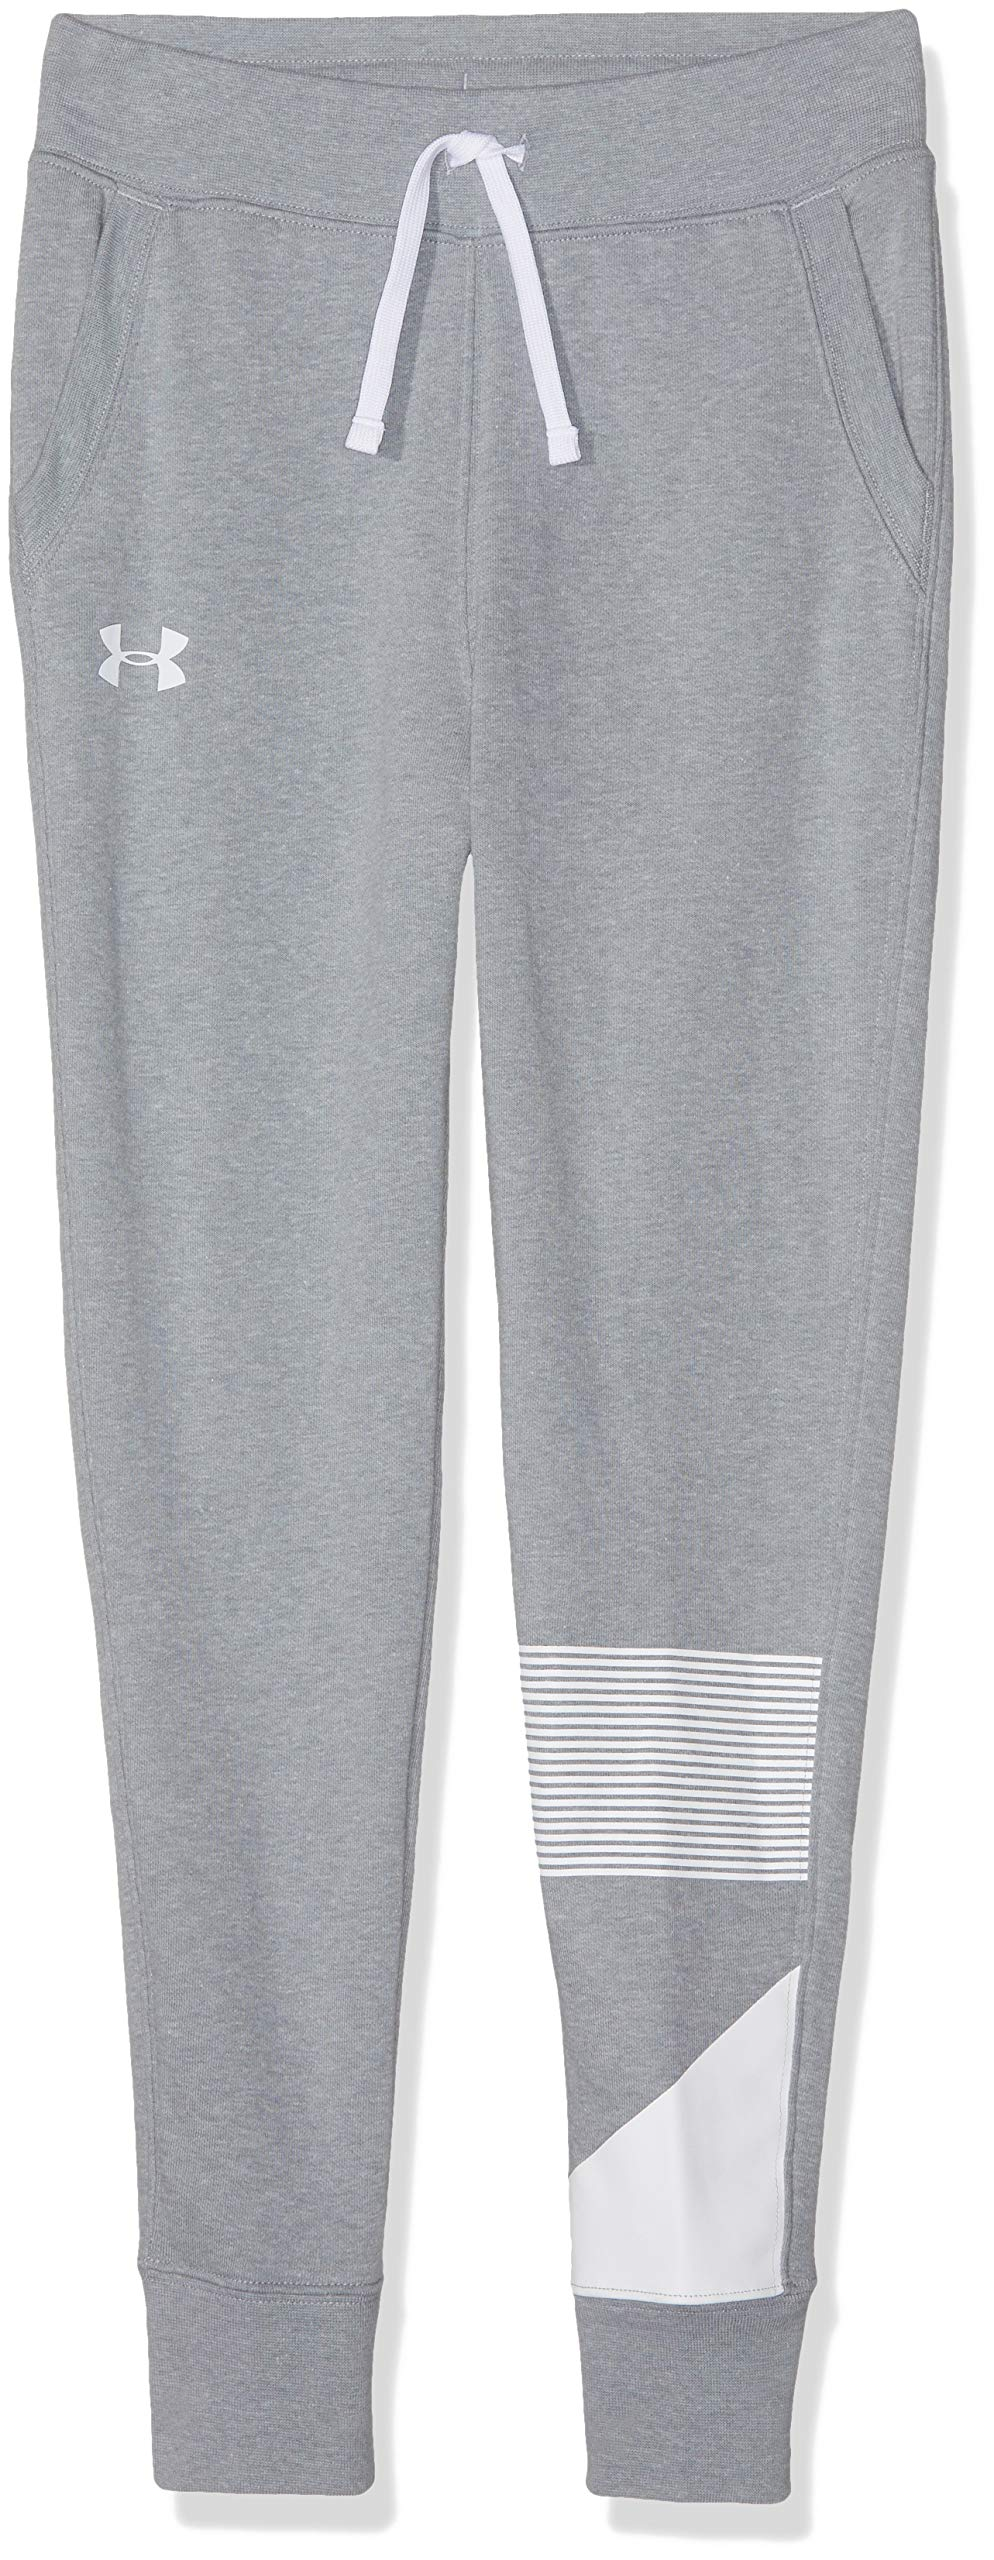 Under Armour Girls Rival Jogger, Steel Light Heather (035)/White, Youth X-Small